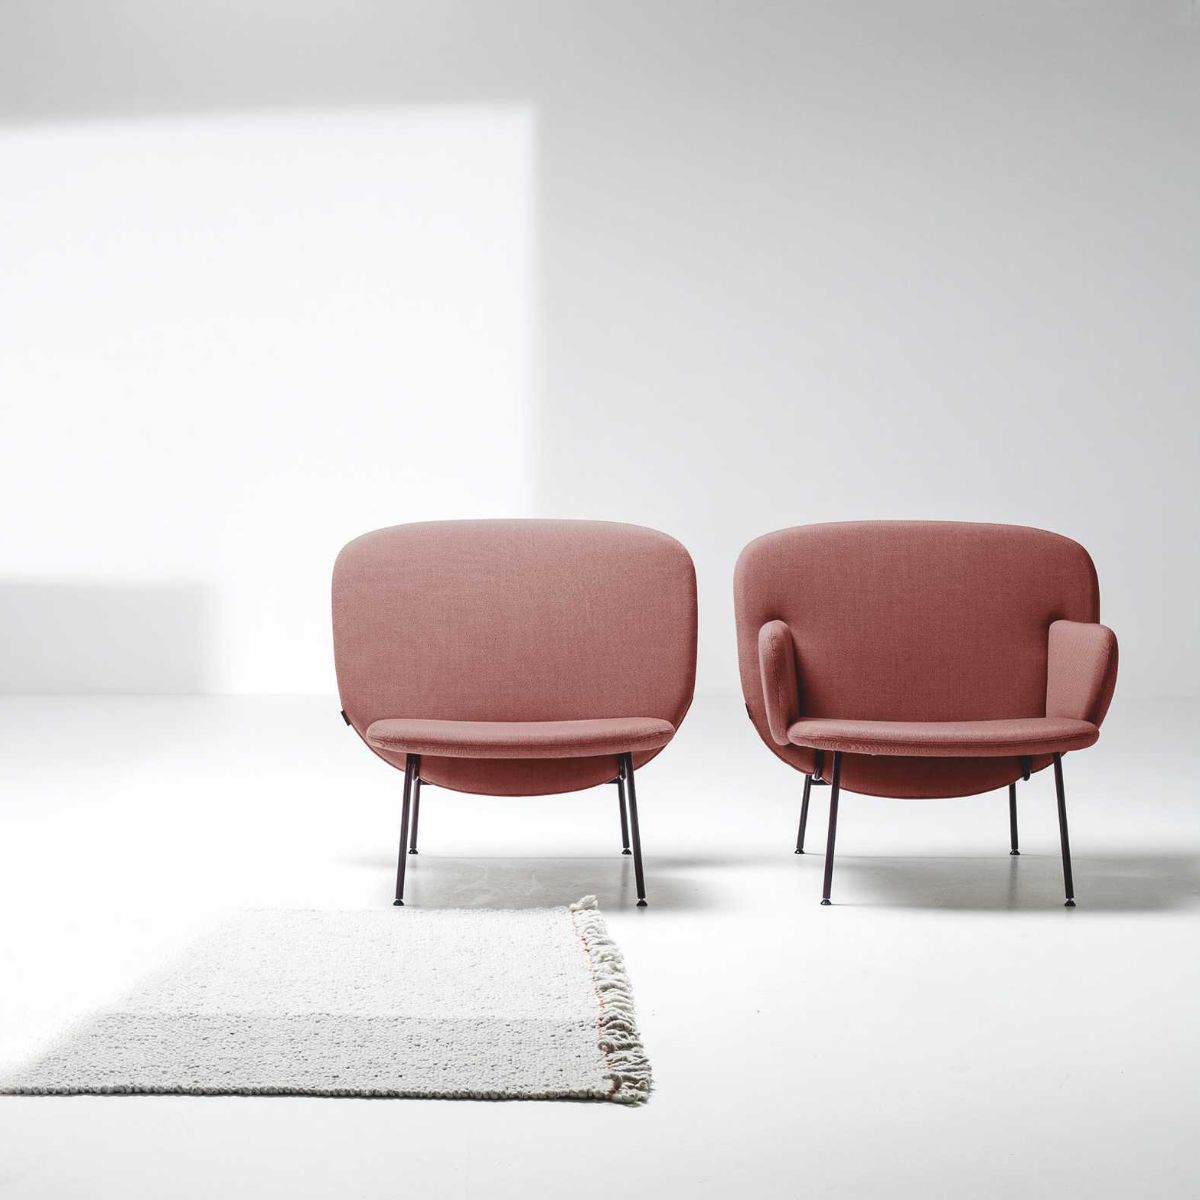 A Photo of two Alta armchair